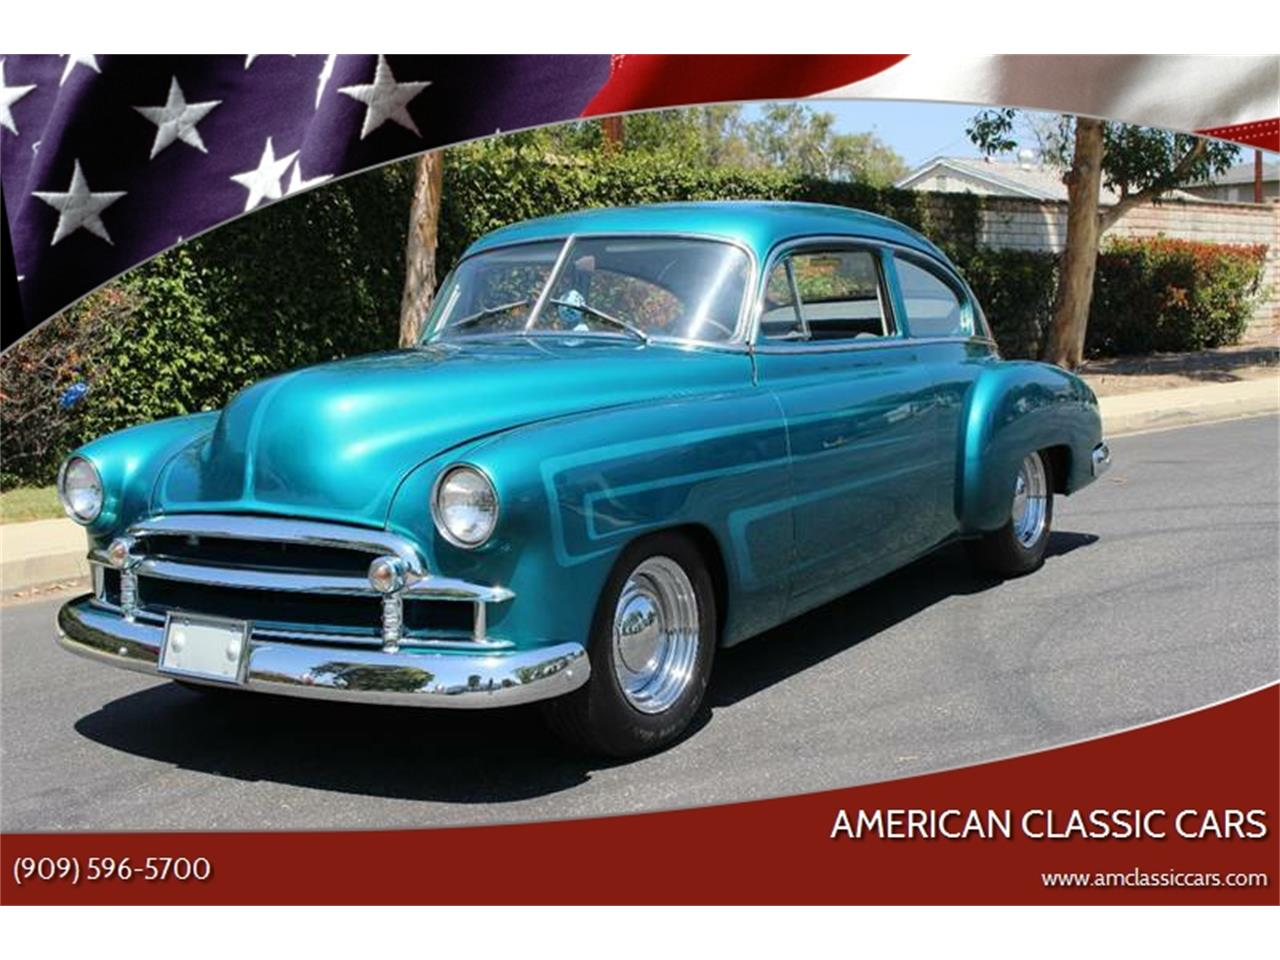 Classifieds for American Classic Cars